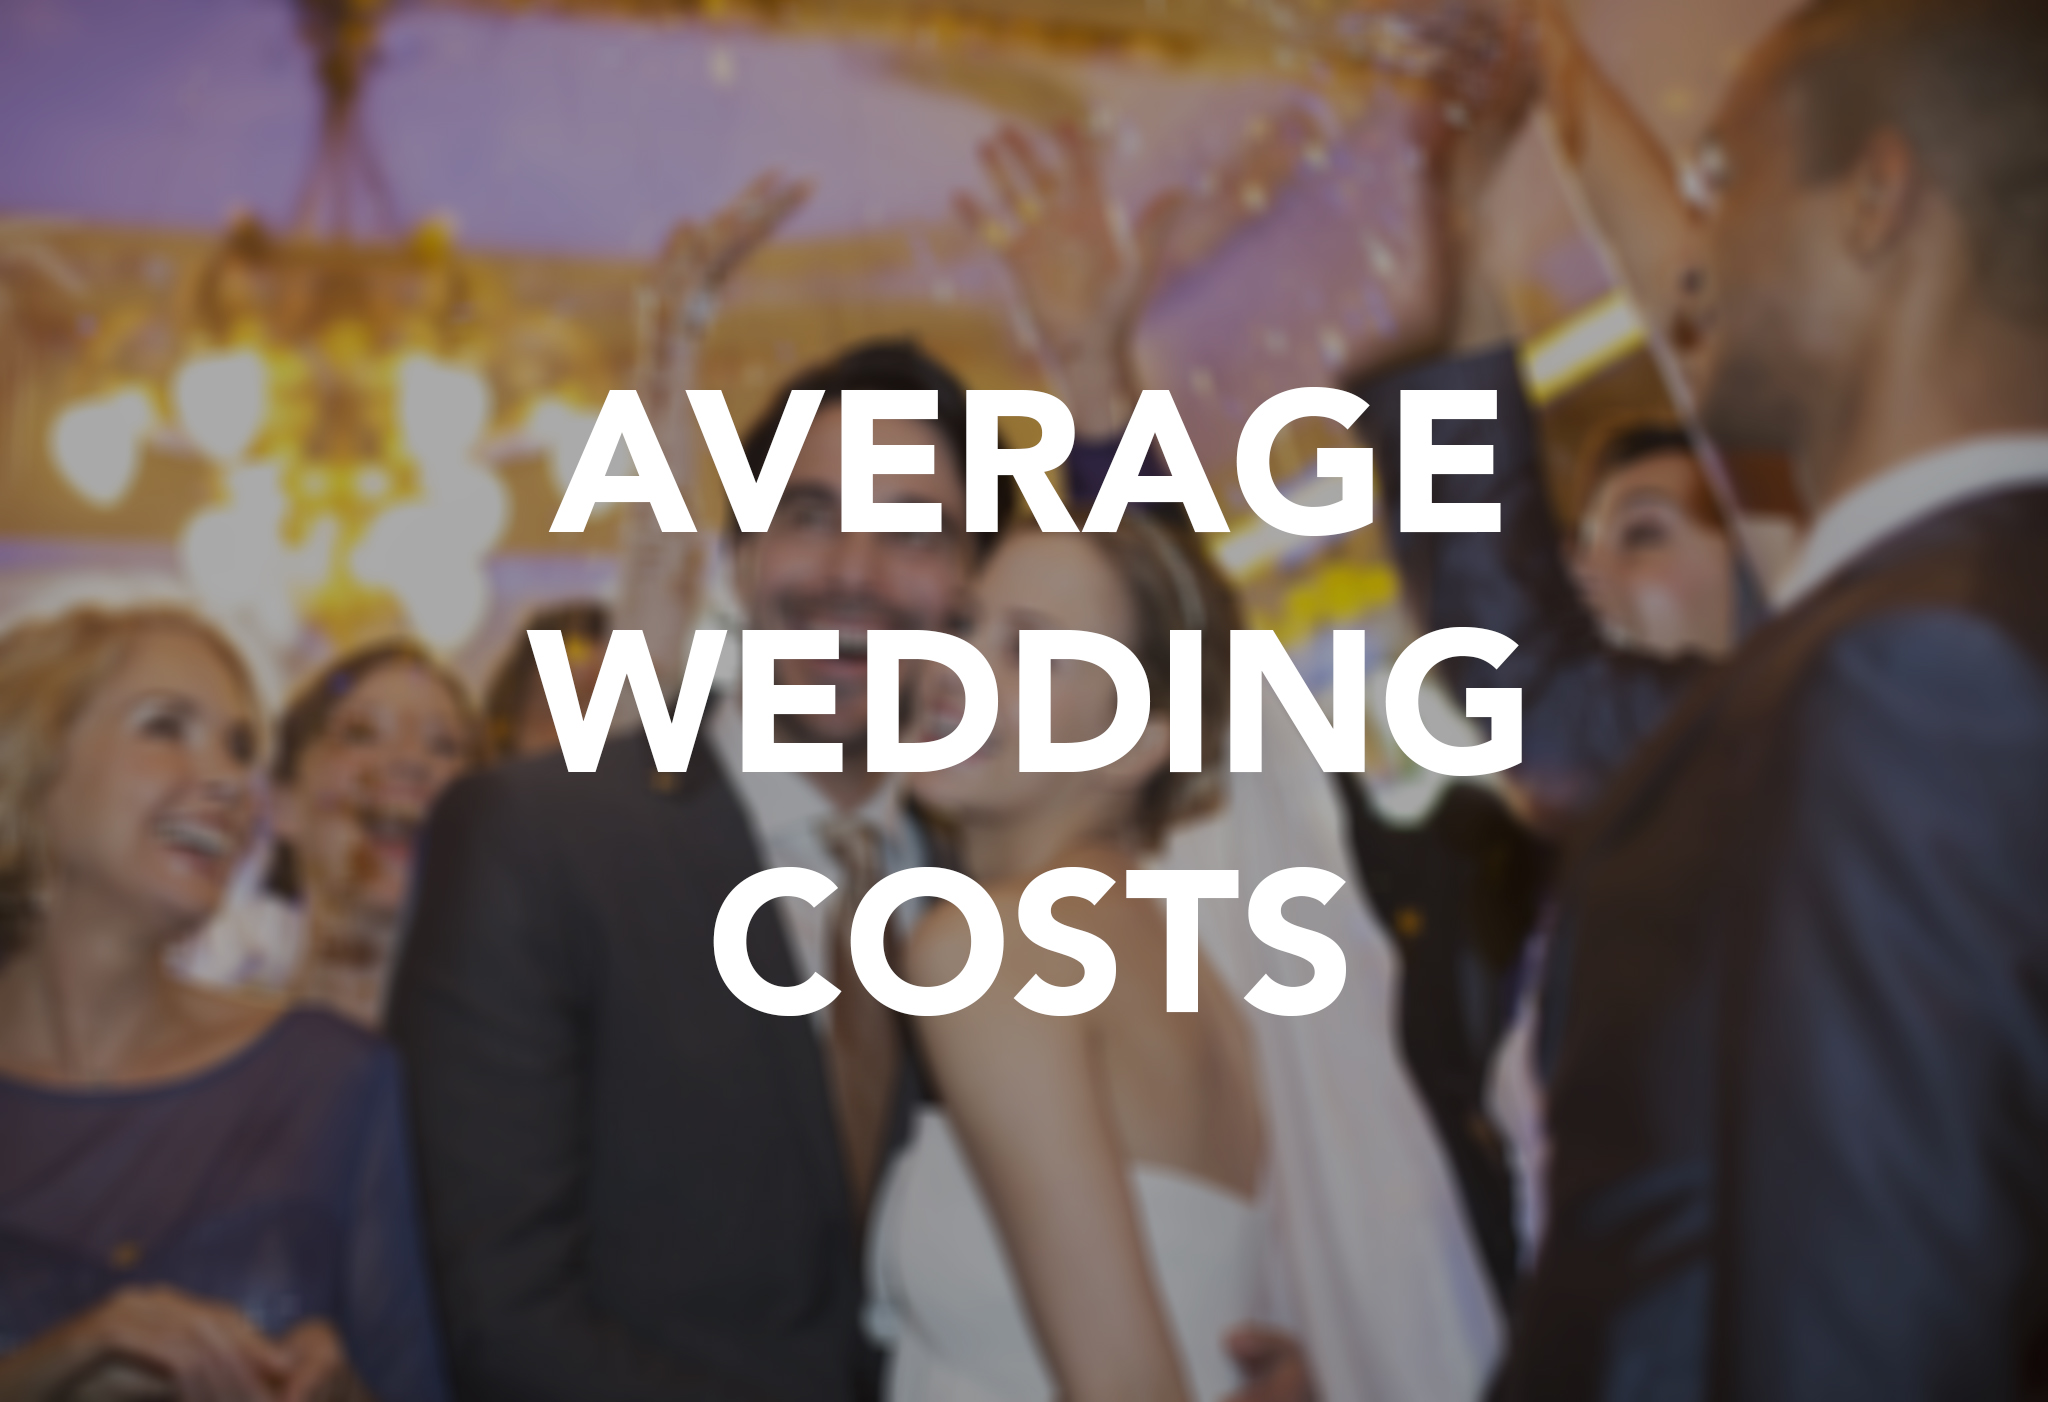 How much the average wedding cost in 2015 item by item Houston